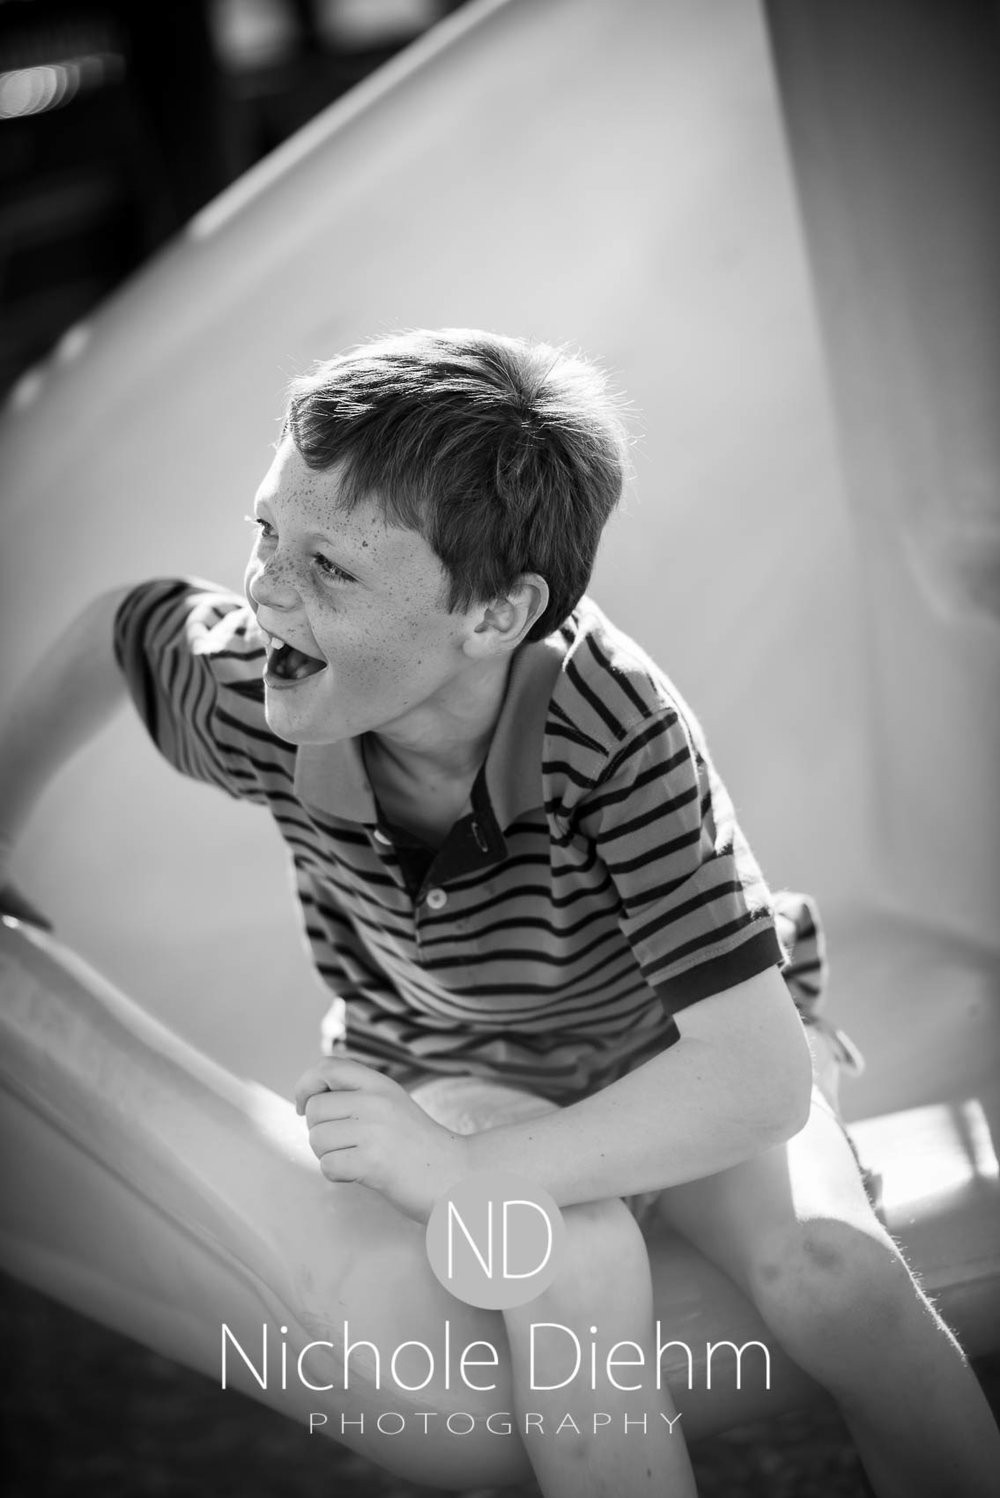 Cedar-Falls-Photographer-Nichole-Diehm-Events-100-women-who-care-beaus-beautiful-blessings-place-to-play-park-greenhill-villiage122.jpg